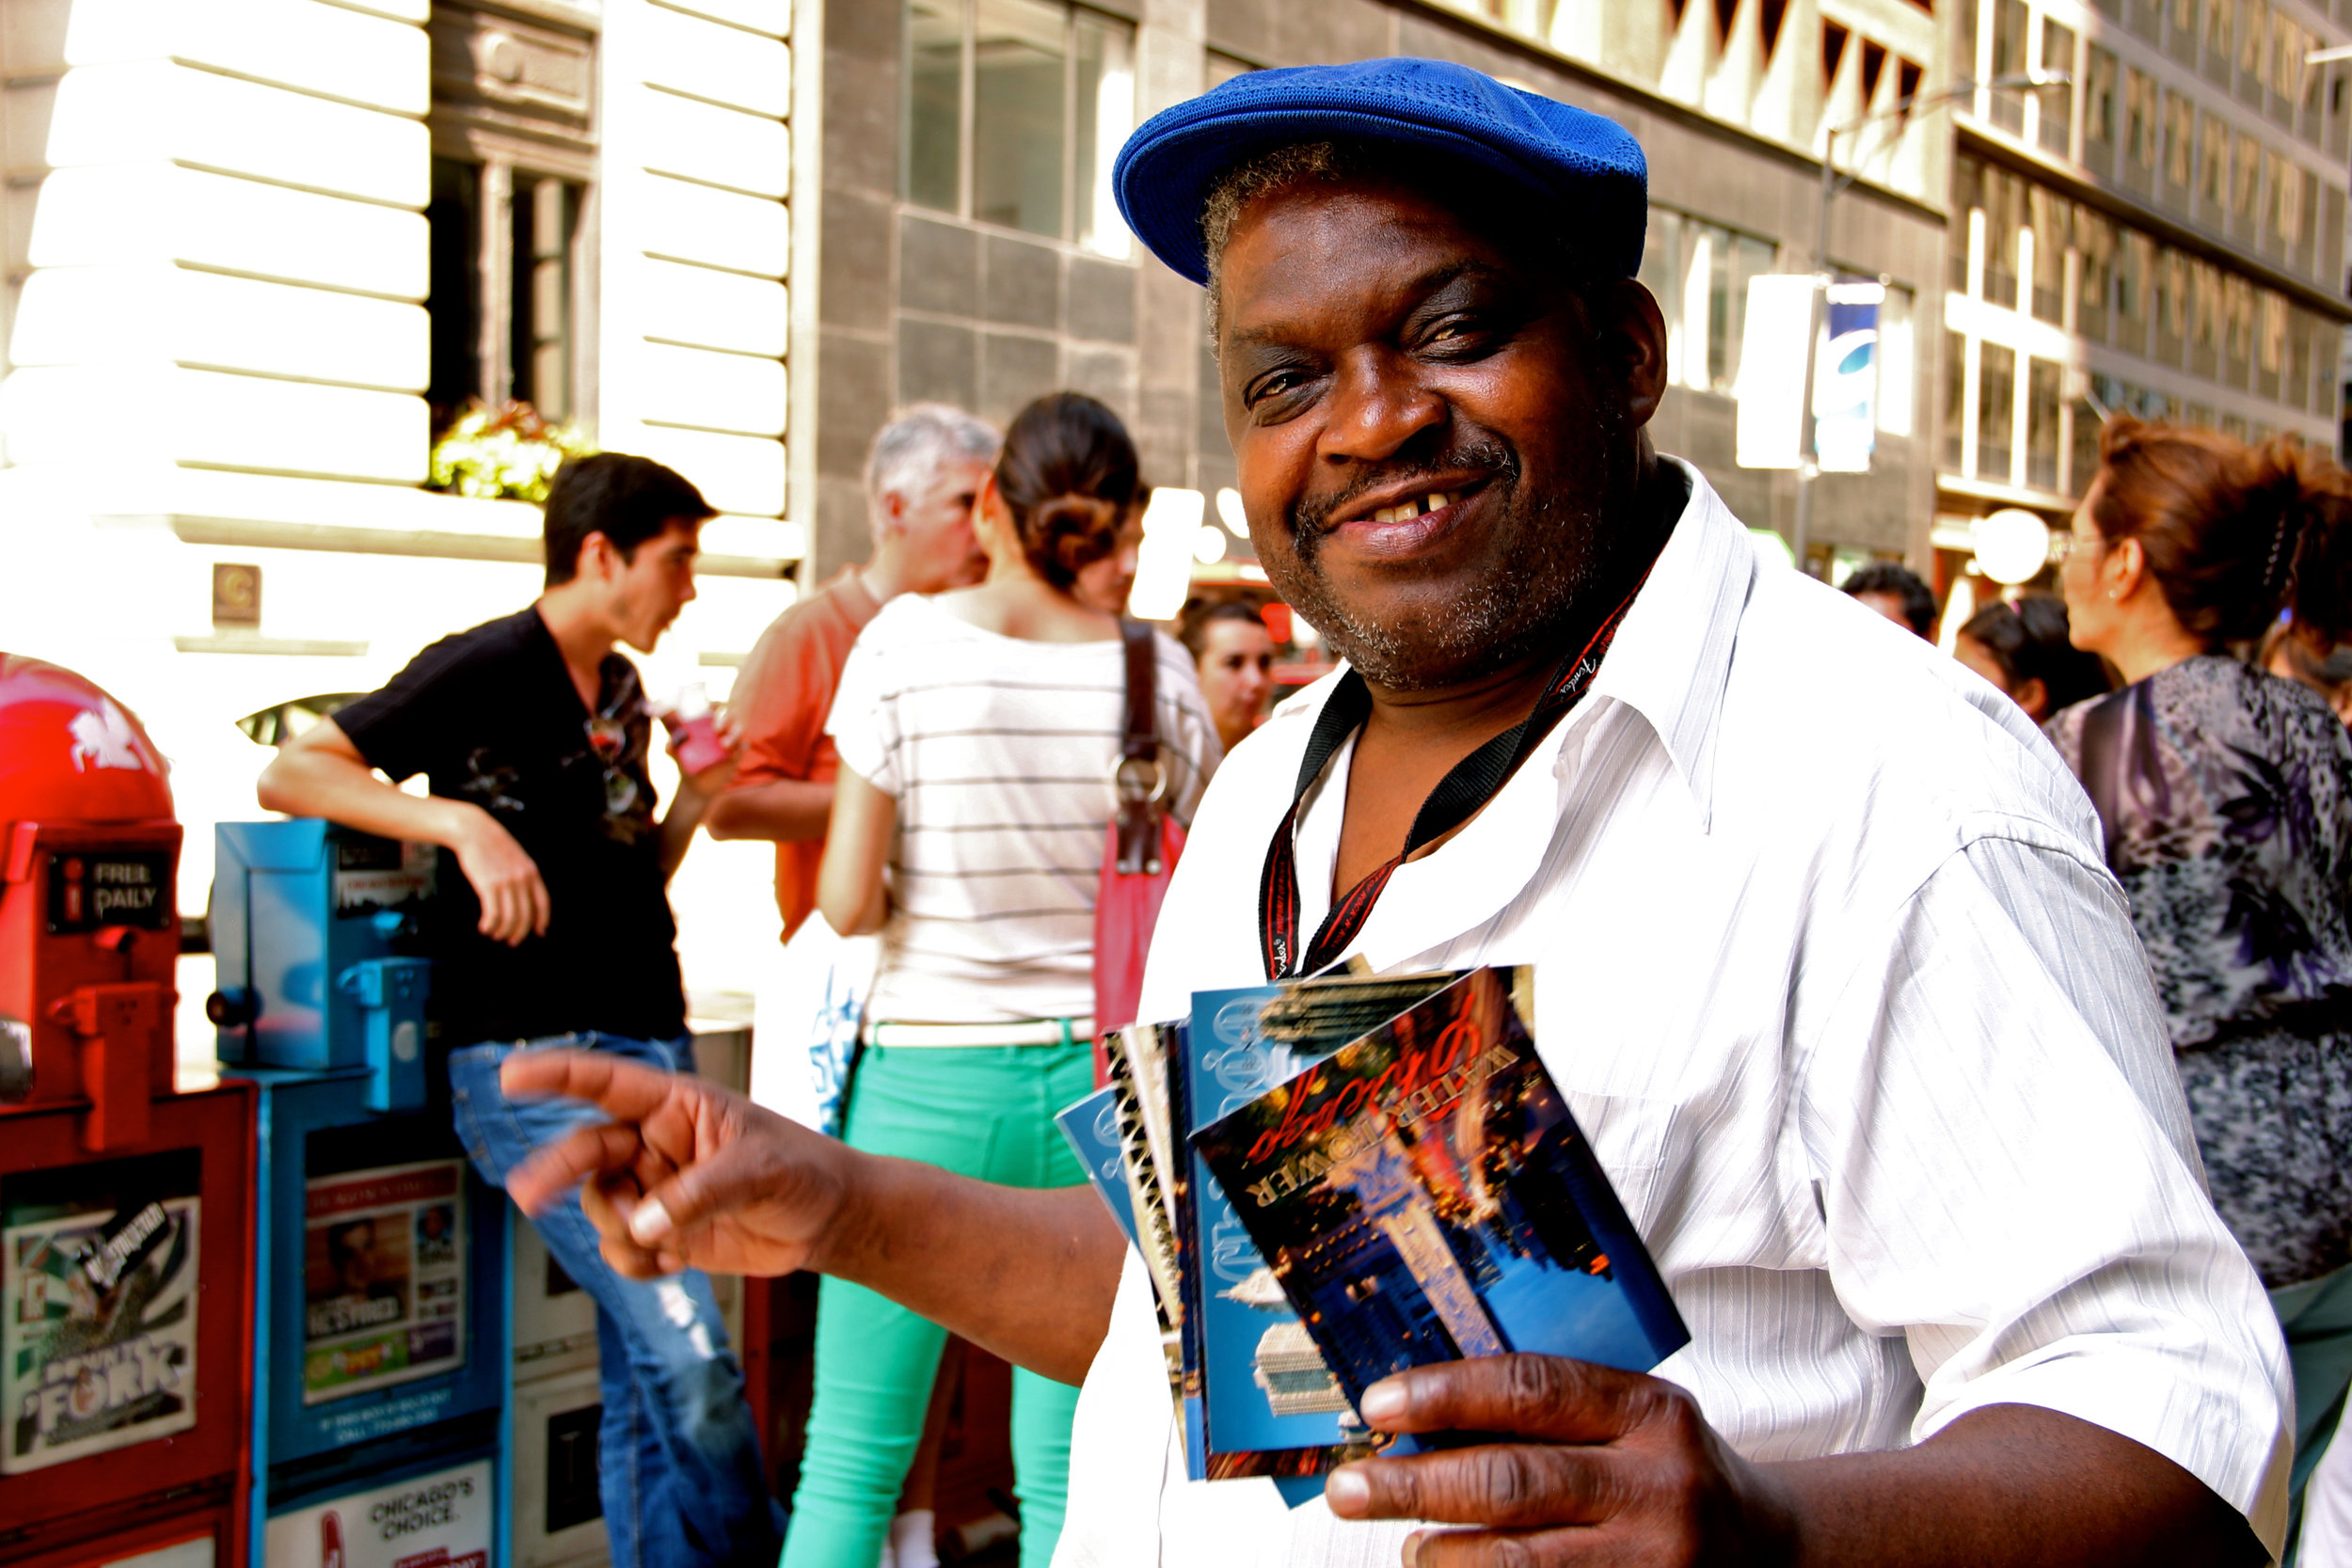 """He was peddling postcards to tourists just outside the Willis Tower entrance. """"They're for the homeless,"""" he told each family.  I gave him some dimes from the bottom of my purse and he shook my hand.  """"That's bullshit, dude."""" A man who'd asked for money ten minutes earlier crossed the street to guilt me. """"You give him that, he's gonna spend it right on drugs.""""  """"Sorry."""" I muttered, tucking the postcard away.  """"Bullshit,"""" the man spat again. """"He does this every day. Bullshit."""""""